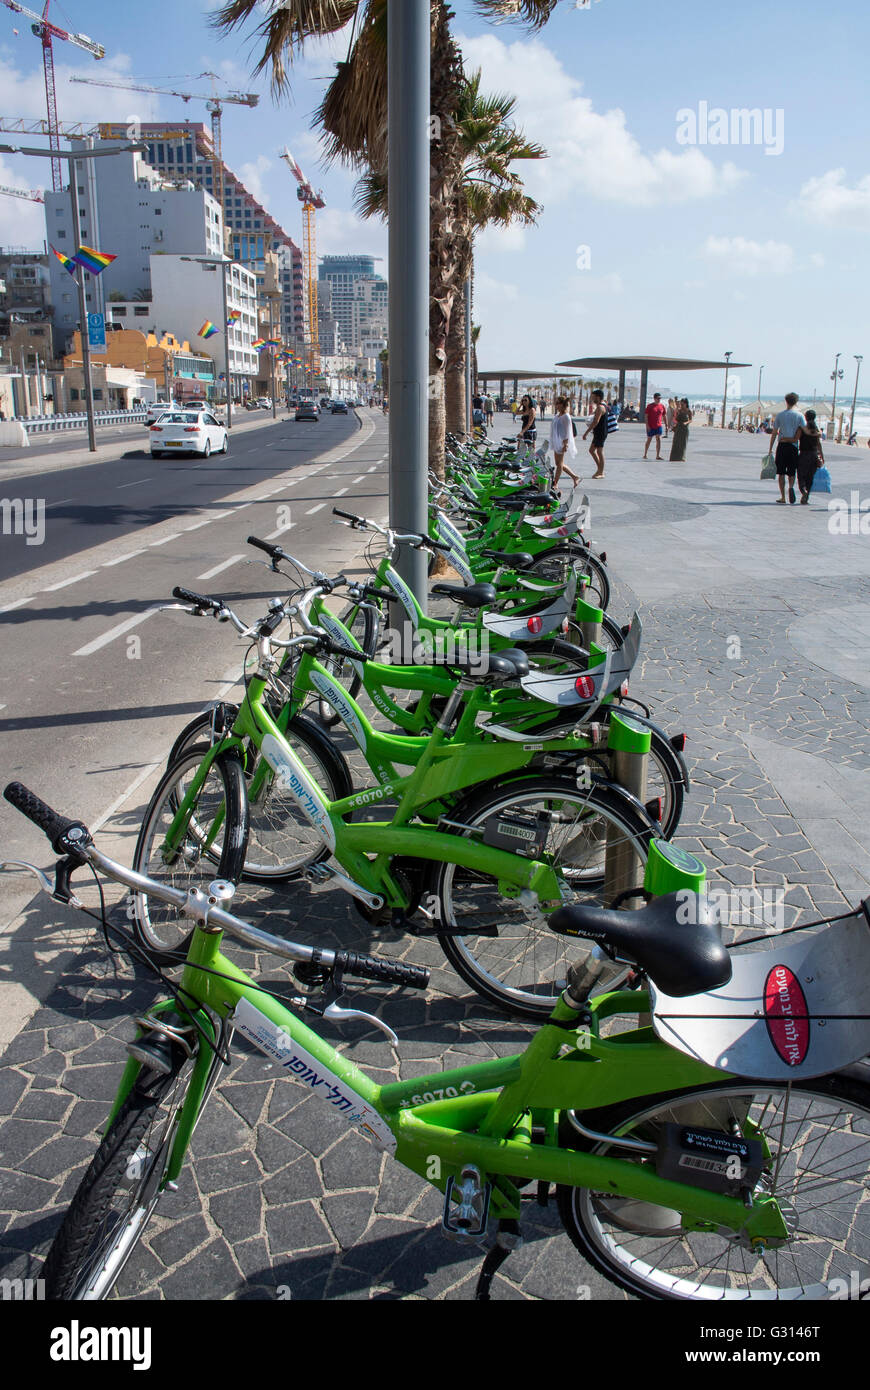 Cycles for hire on the beach front in Tel Aviv, Israel. - Stock Image